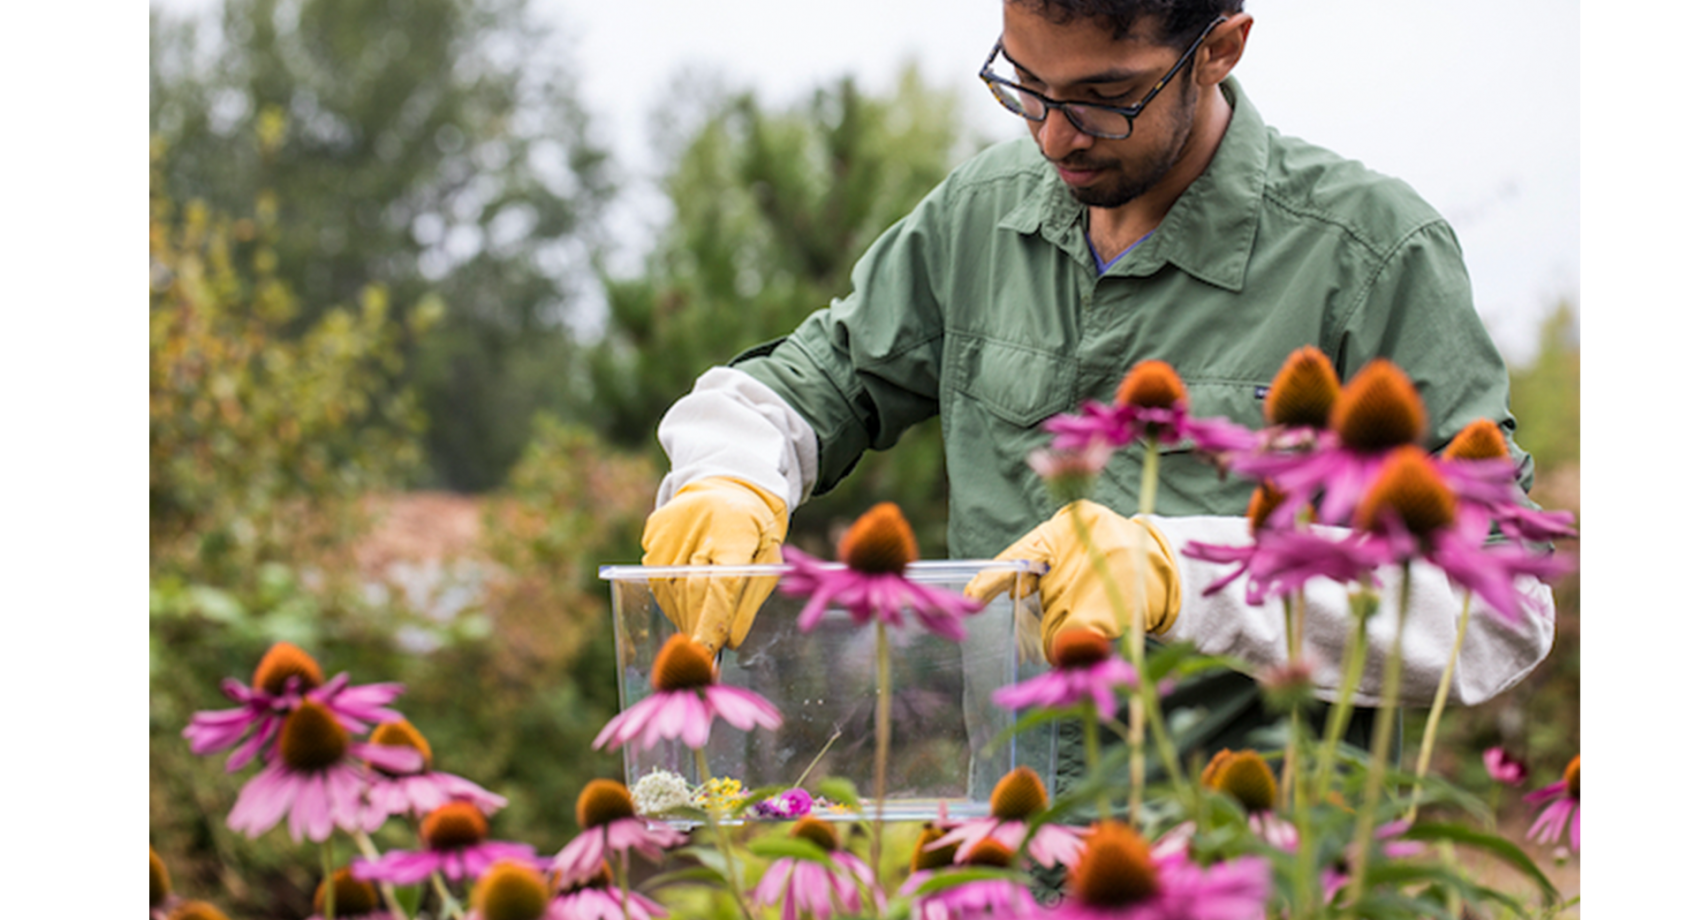 UW ECE doctoral student Vikram Iyer featured in AAAS for murder hornet tracking; finding ways to meld nature and science Banner